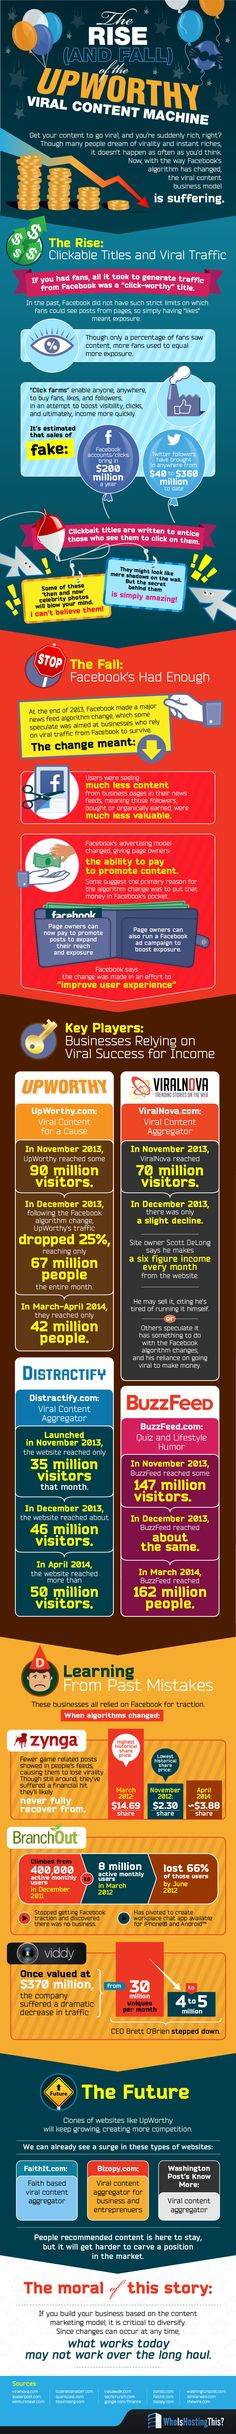 The Rise and Fall of the #Upworthy Viral Content Machine #infographic #Marketing #ContentMarketing #Viralcontent